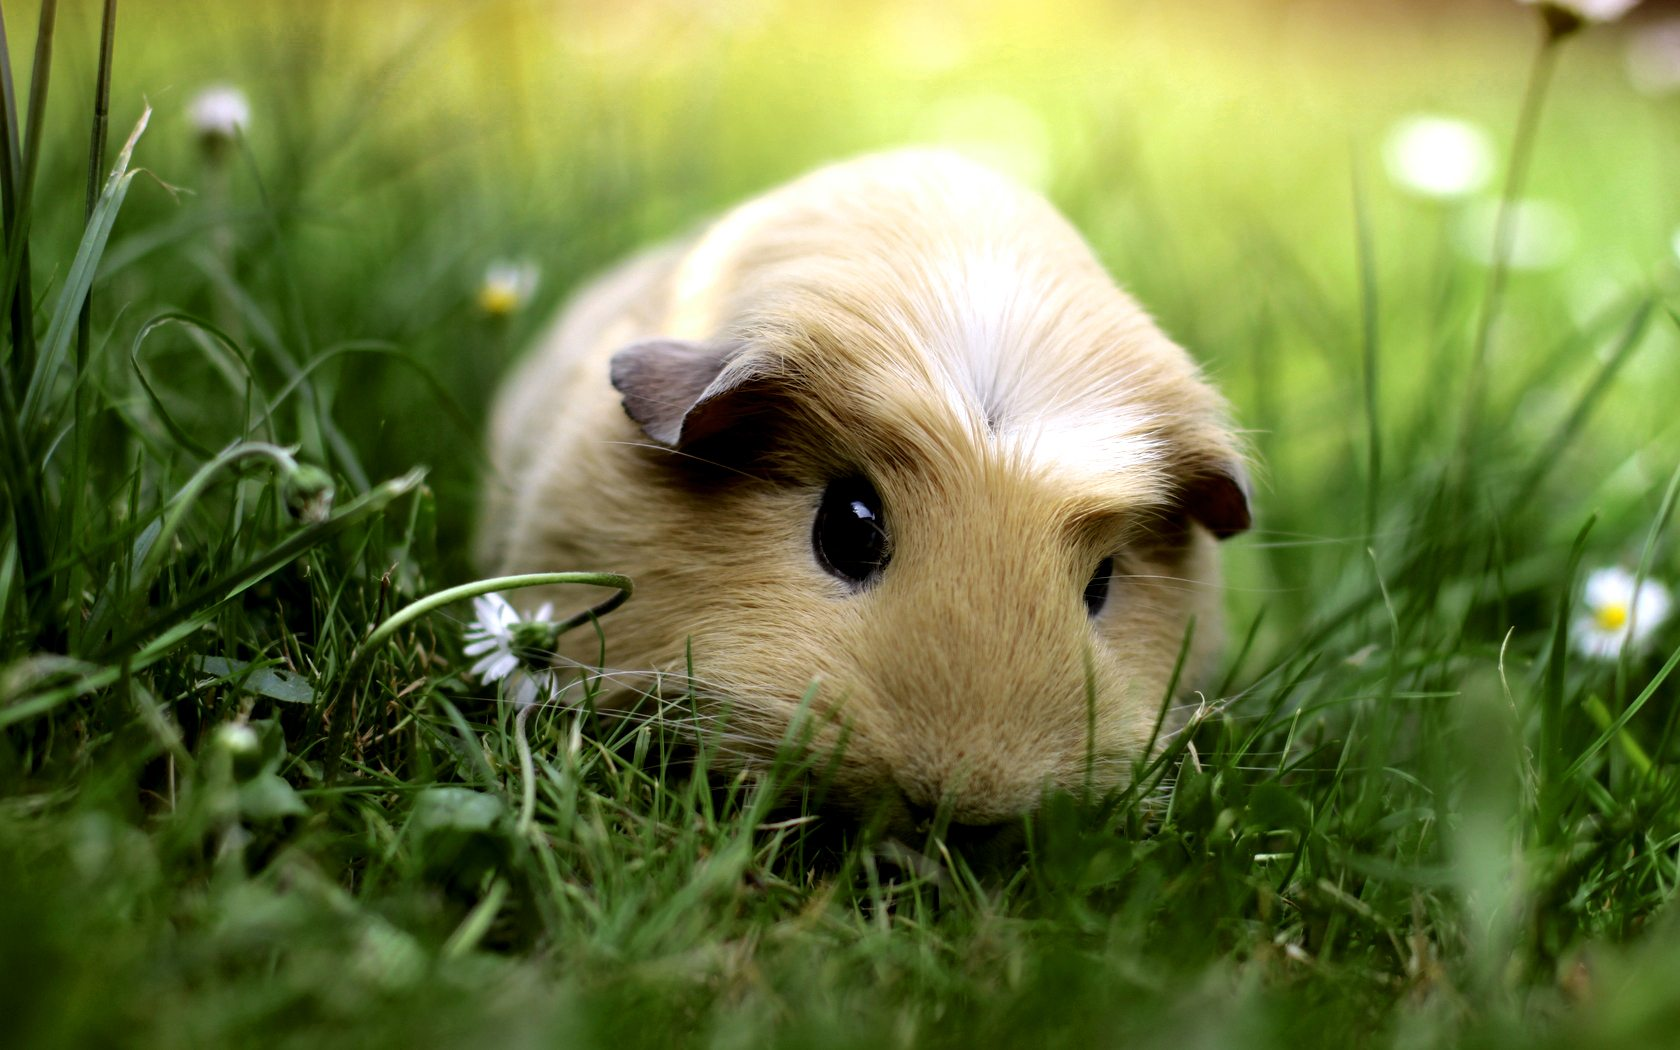 Cute Baby Pigs 11121 Hd Wallpapers in Animals   Imagescicom 1680x1050